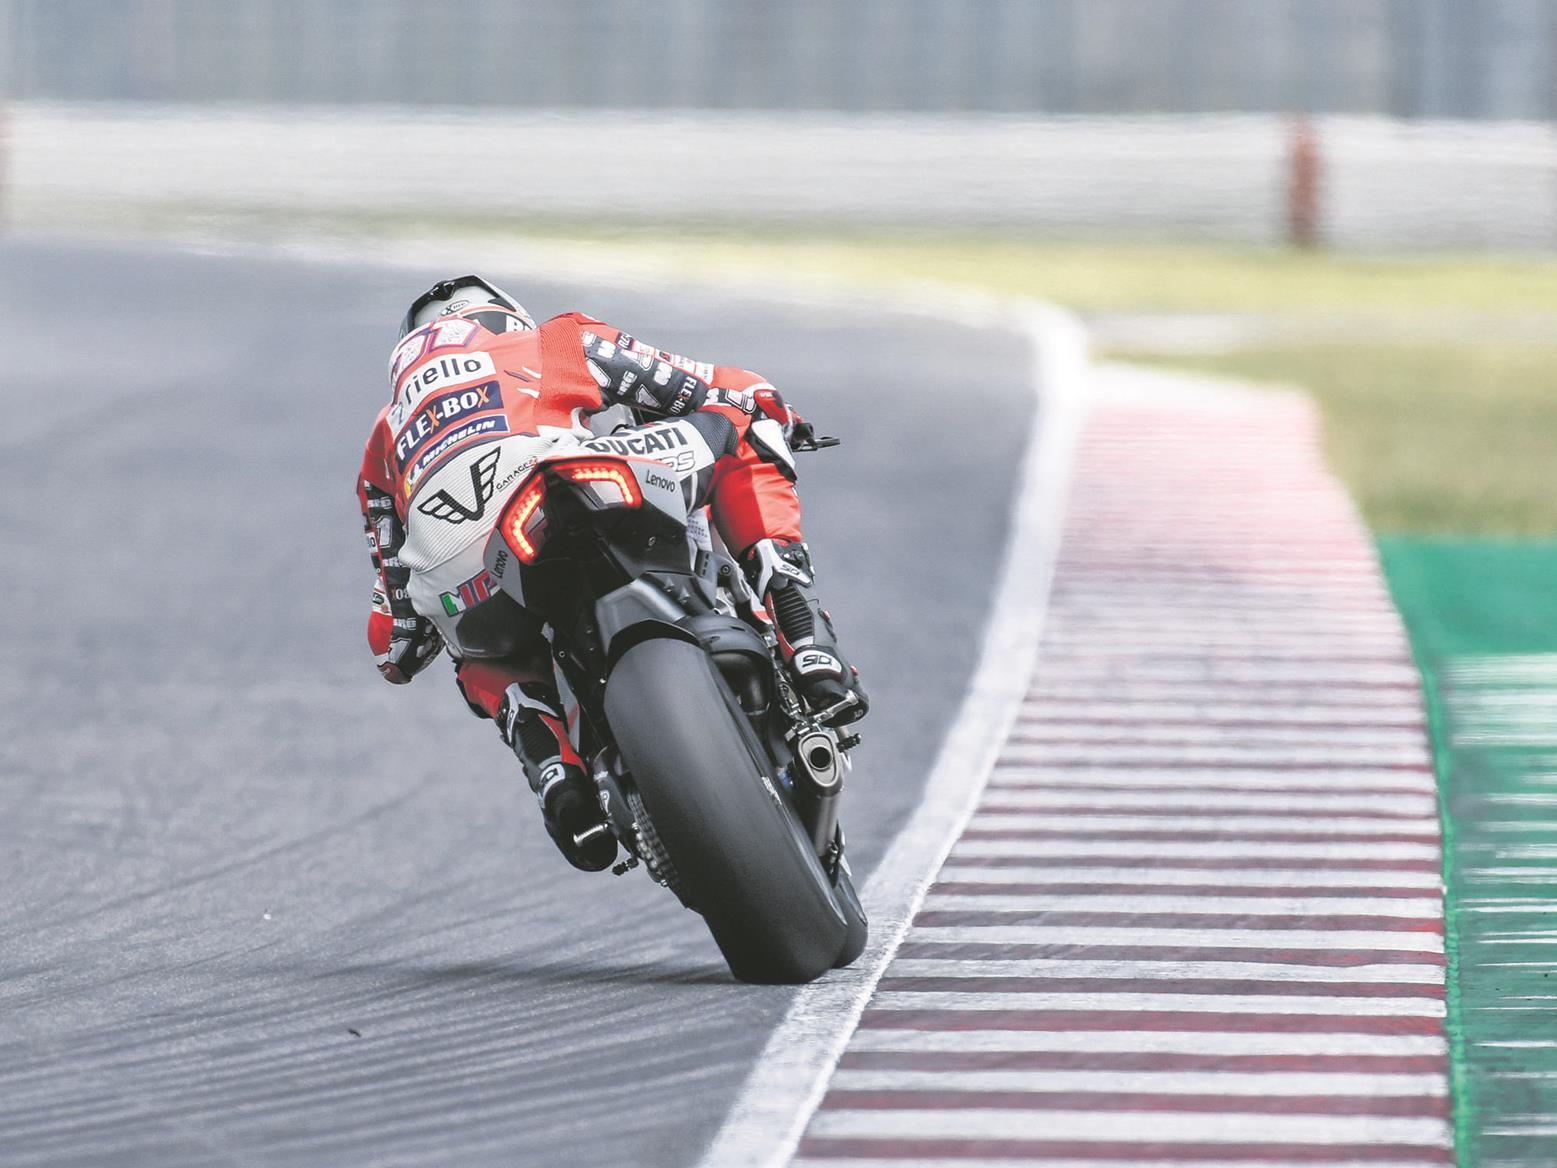 Pirro accelerates on the Panigale V4